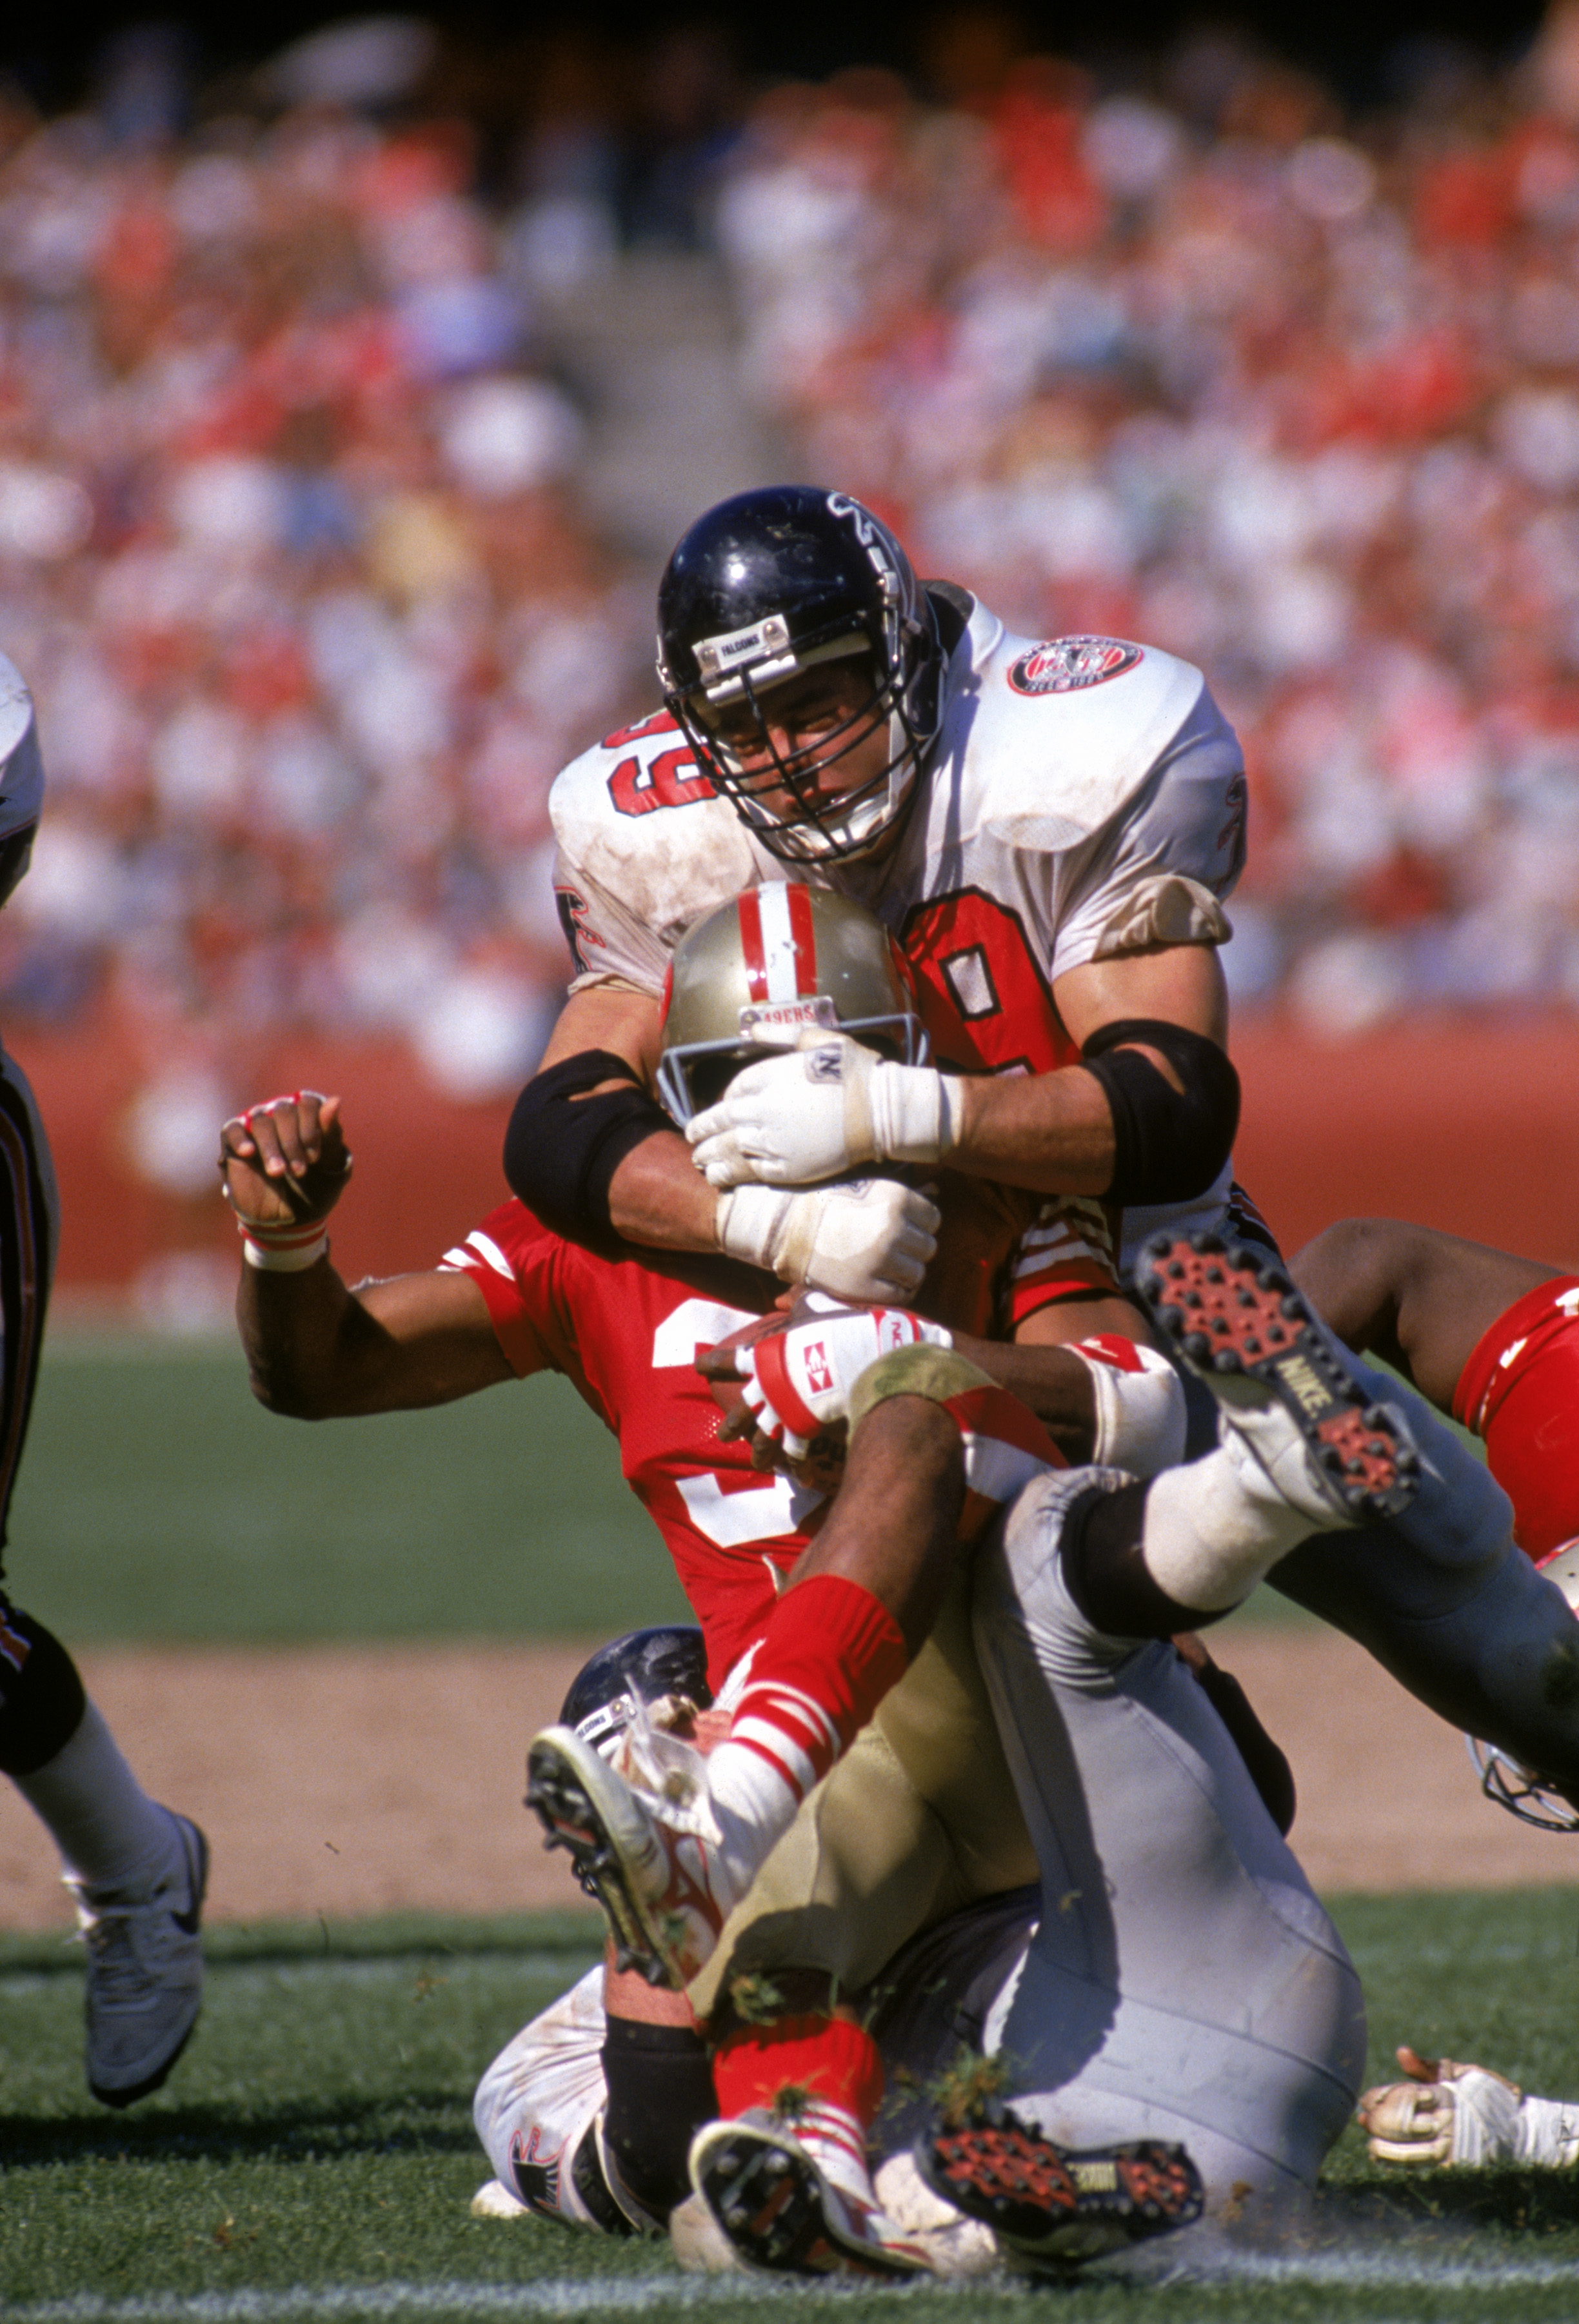 Defensive end Tim Green #99 of the Atlanta Falcons tackles running back Roger Craig #33 of the San Francisco 49ers during a game at Candlestick Park on Sept. 23, 1990 in San Francisco.